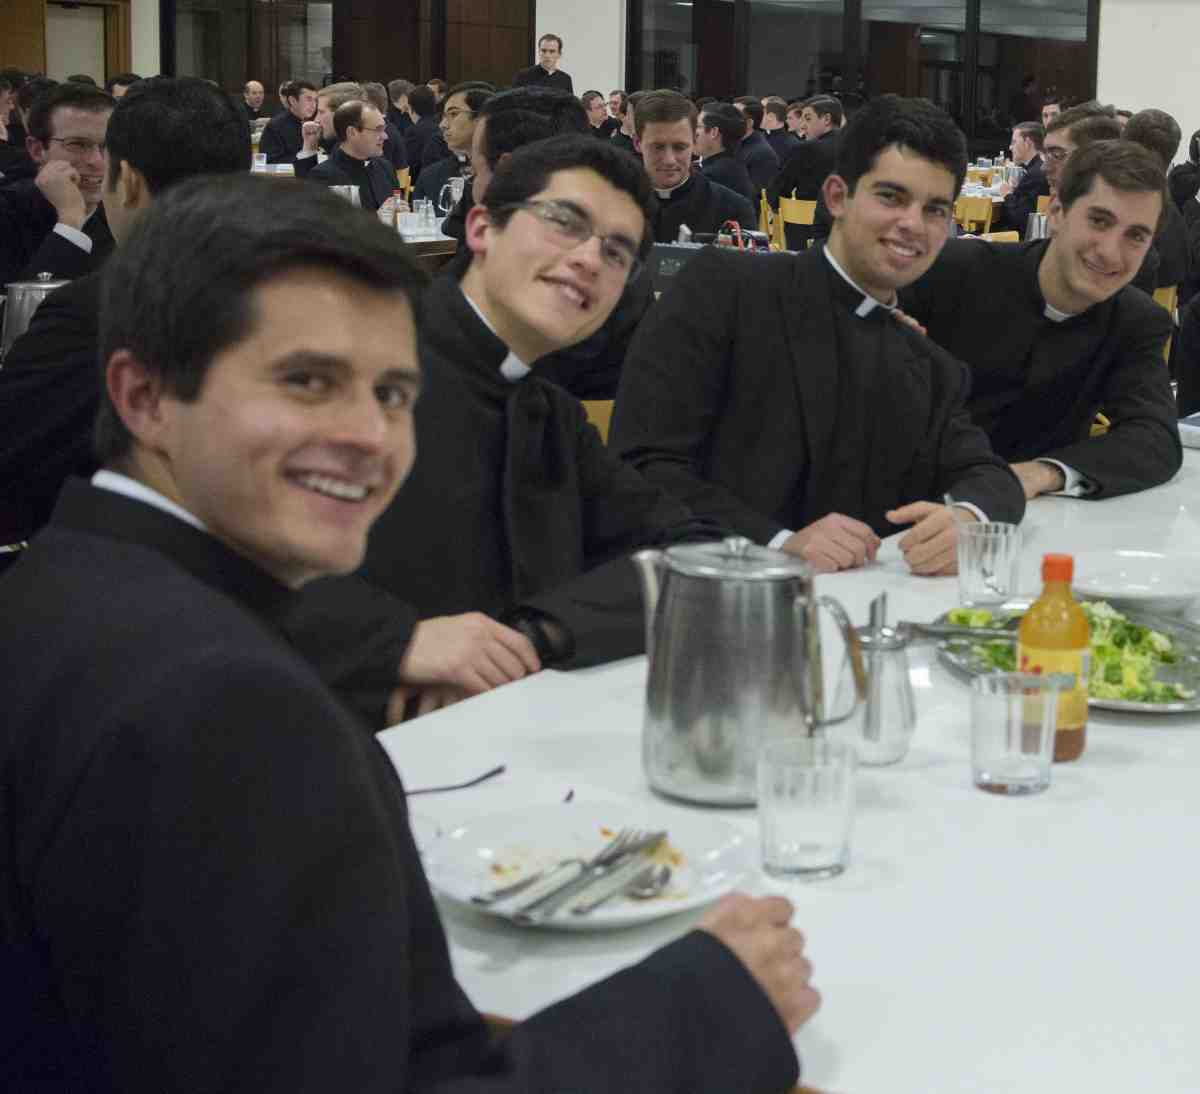 Seminarians are men who are preparing to be Catholic missionary priests